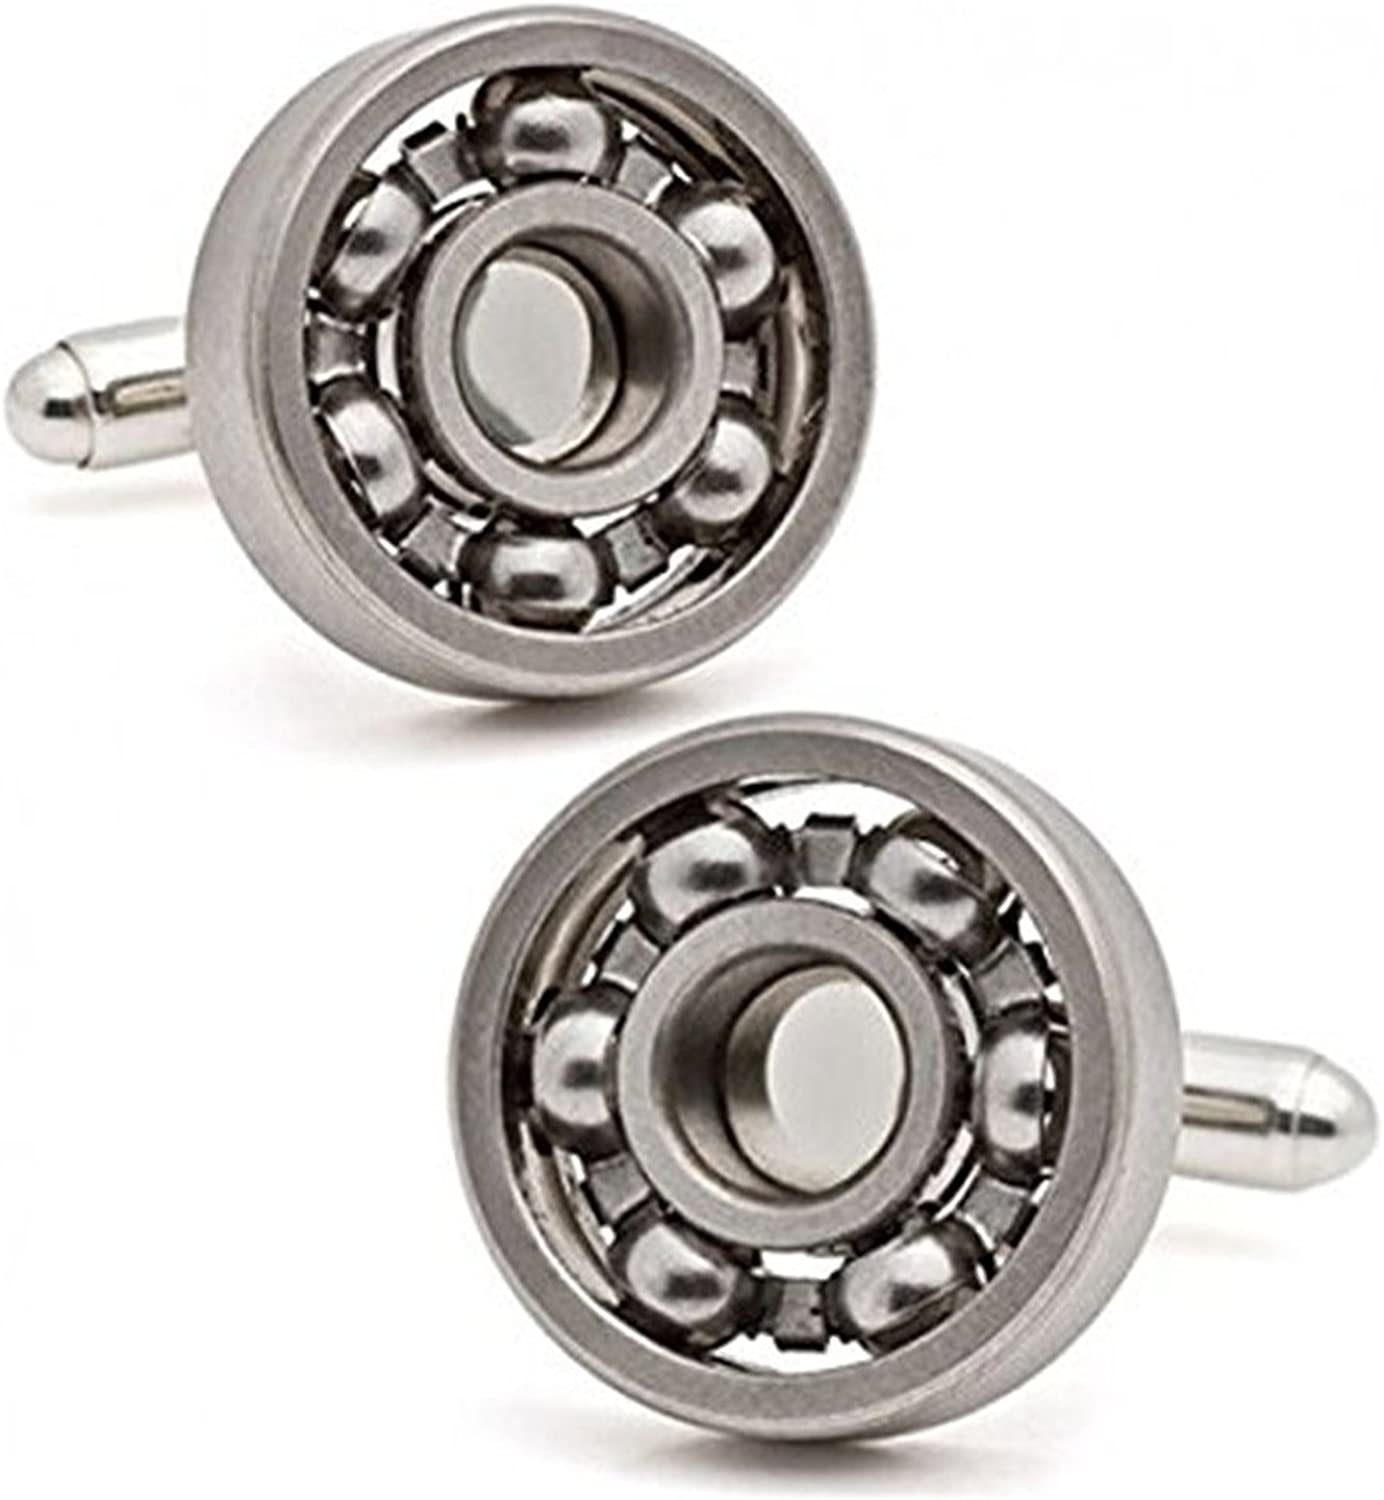 Stainless Steel Wedding Gift Shirt Cuff Links Stylish Designer Bearing Cufflinks